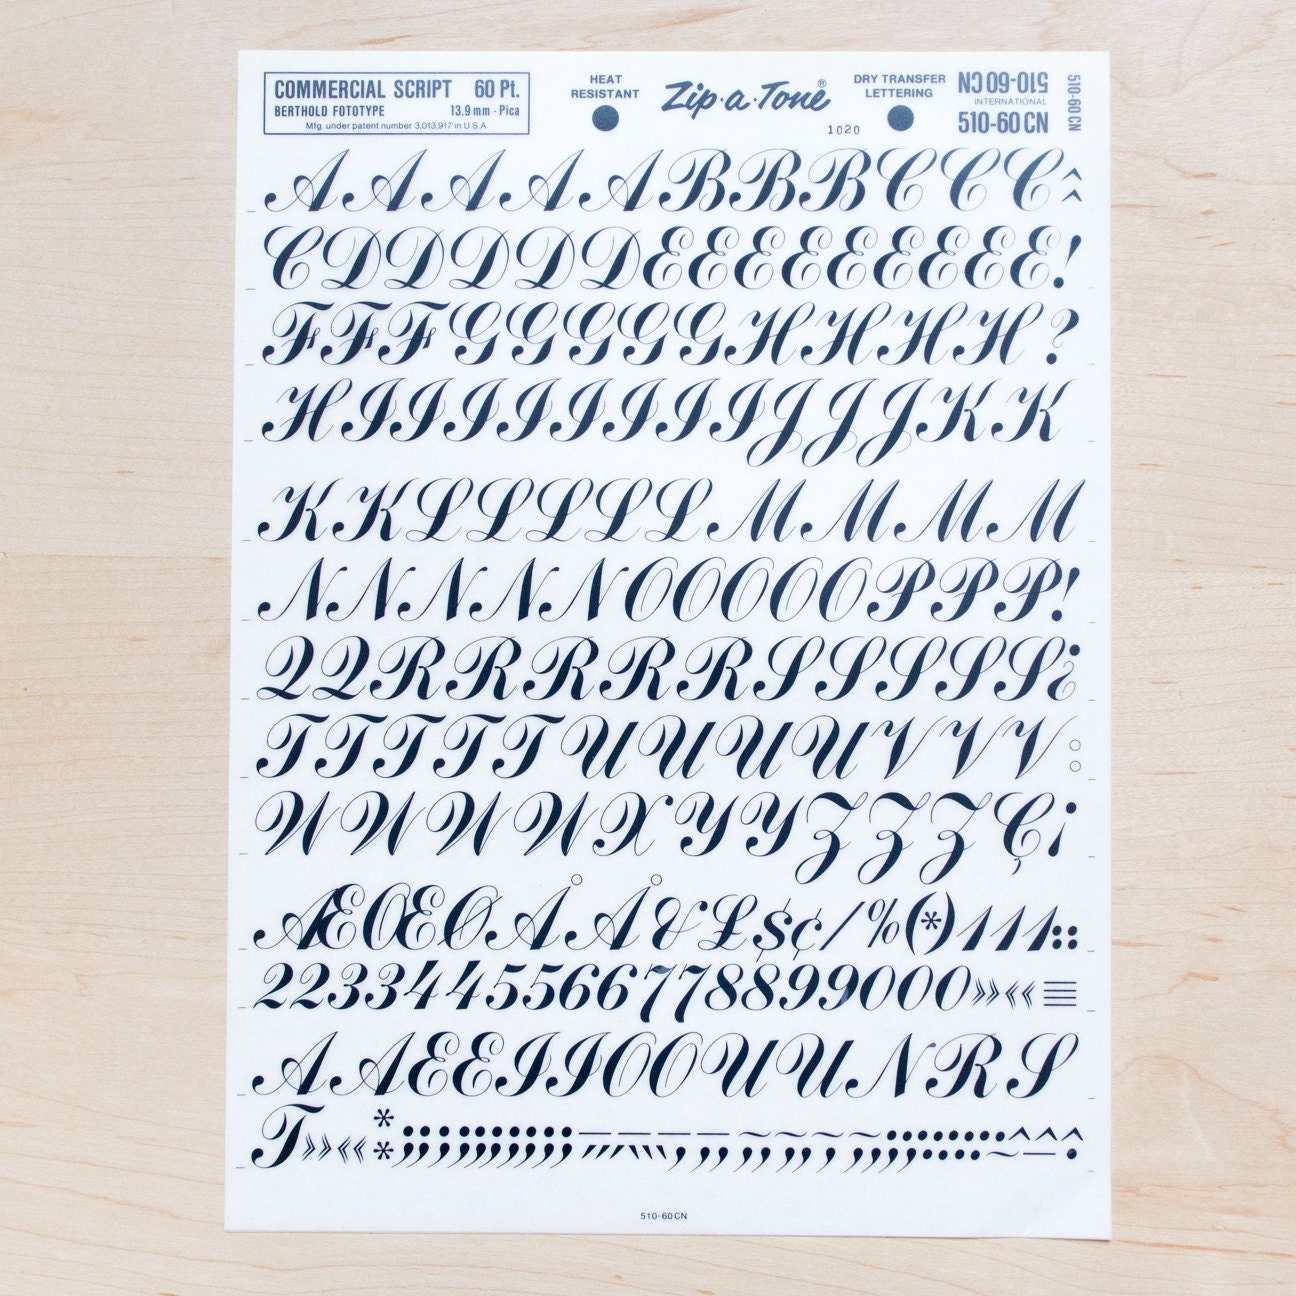 commercial script 60pt letraset rub on letters transfers dry With dry rub transfer lettering